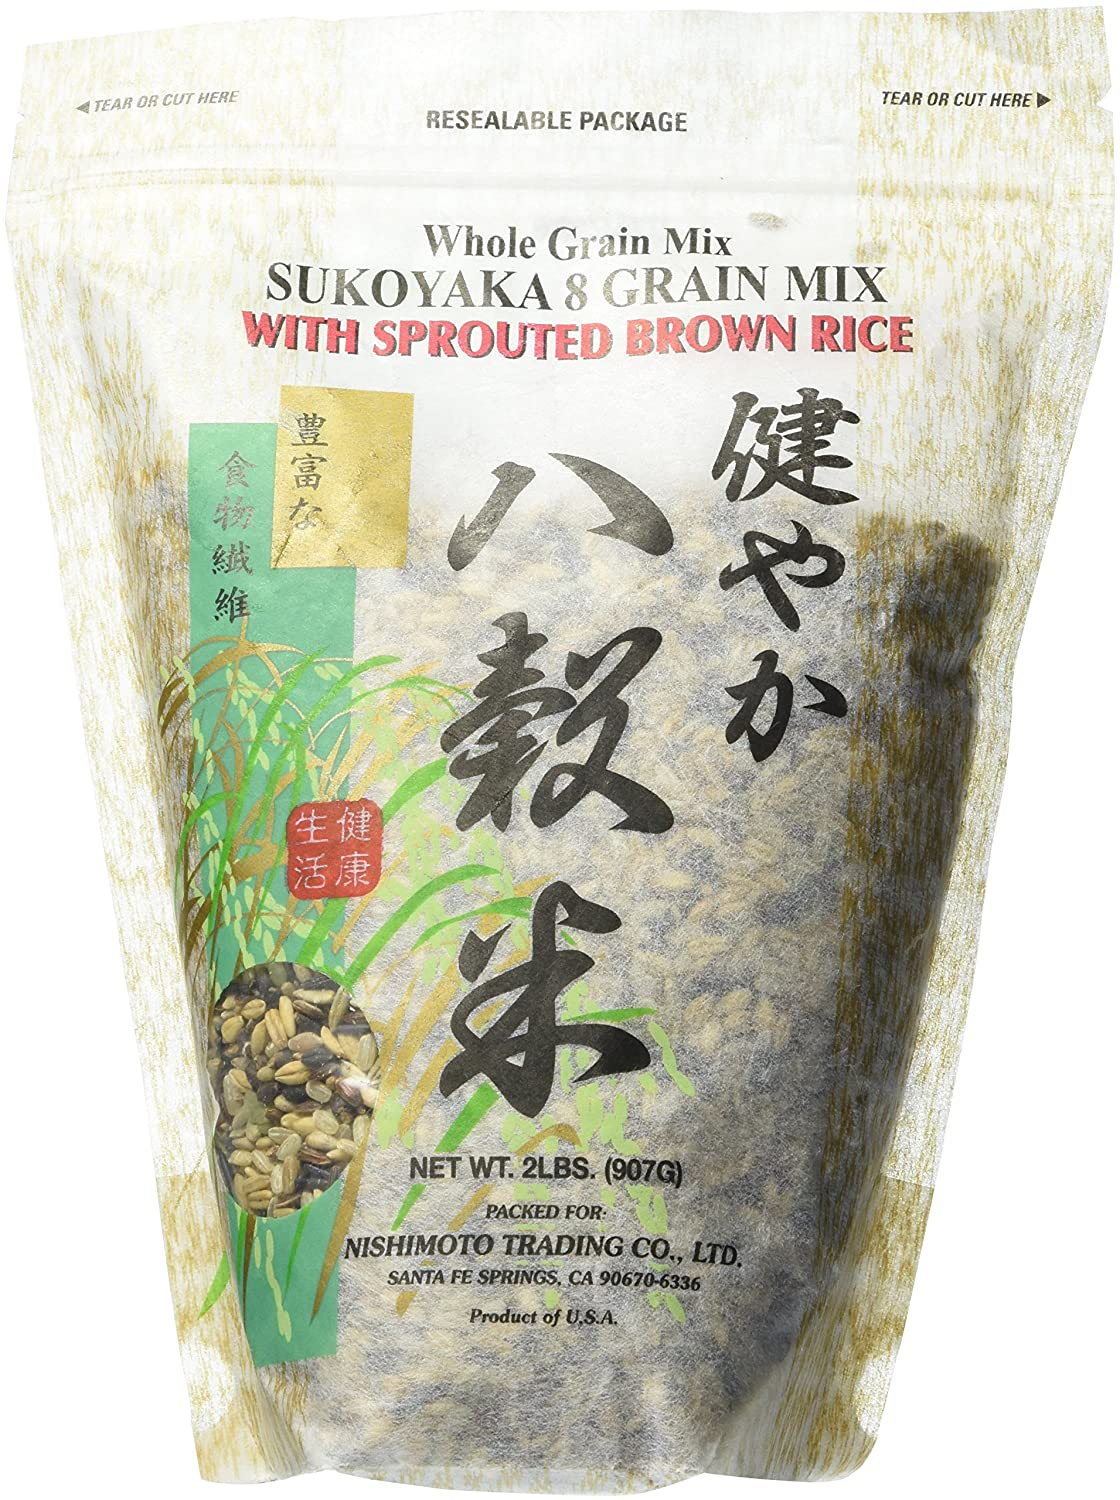 Nishimoto Trading Co , Sukoyaka 8 Grain Mix with Sprouted Brown Rice, 2 lb